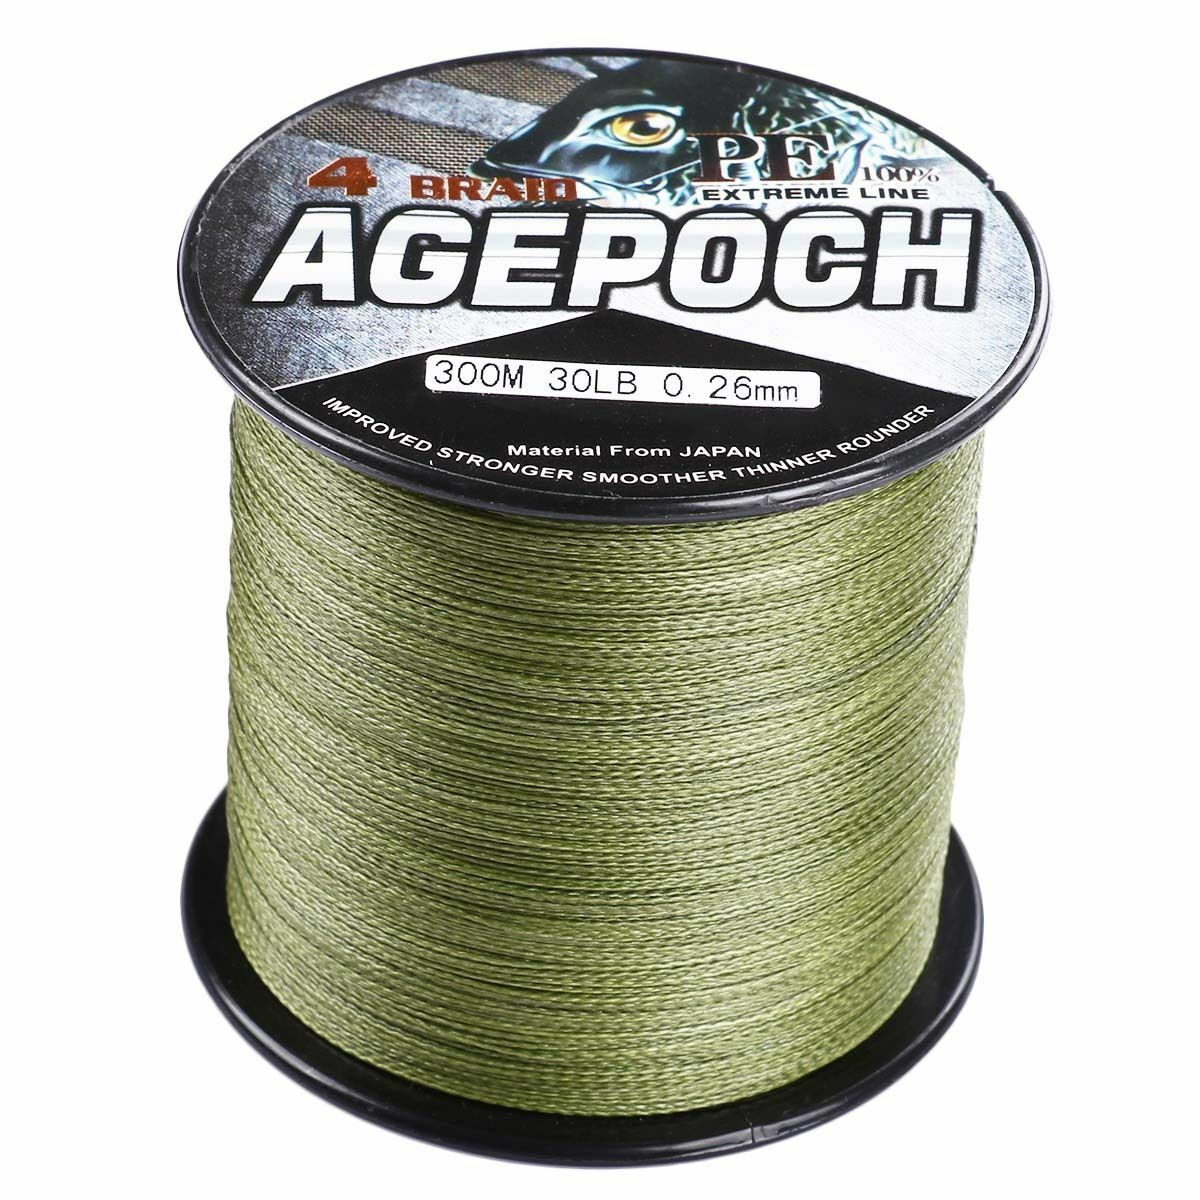 Army Green Super Power Braided Fishing Line 109yds2187yds 6LB- 300LB TOP